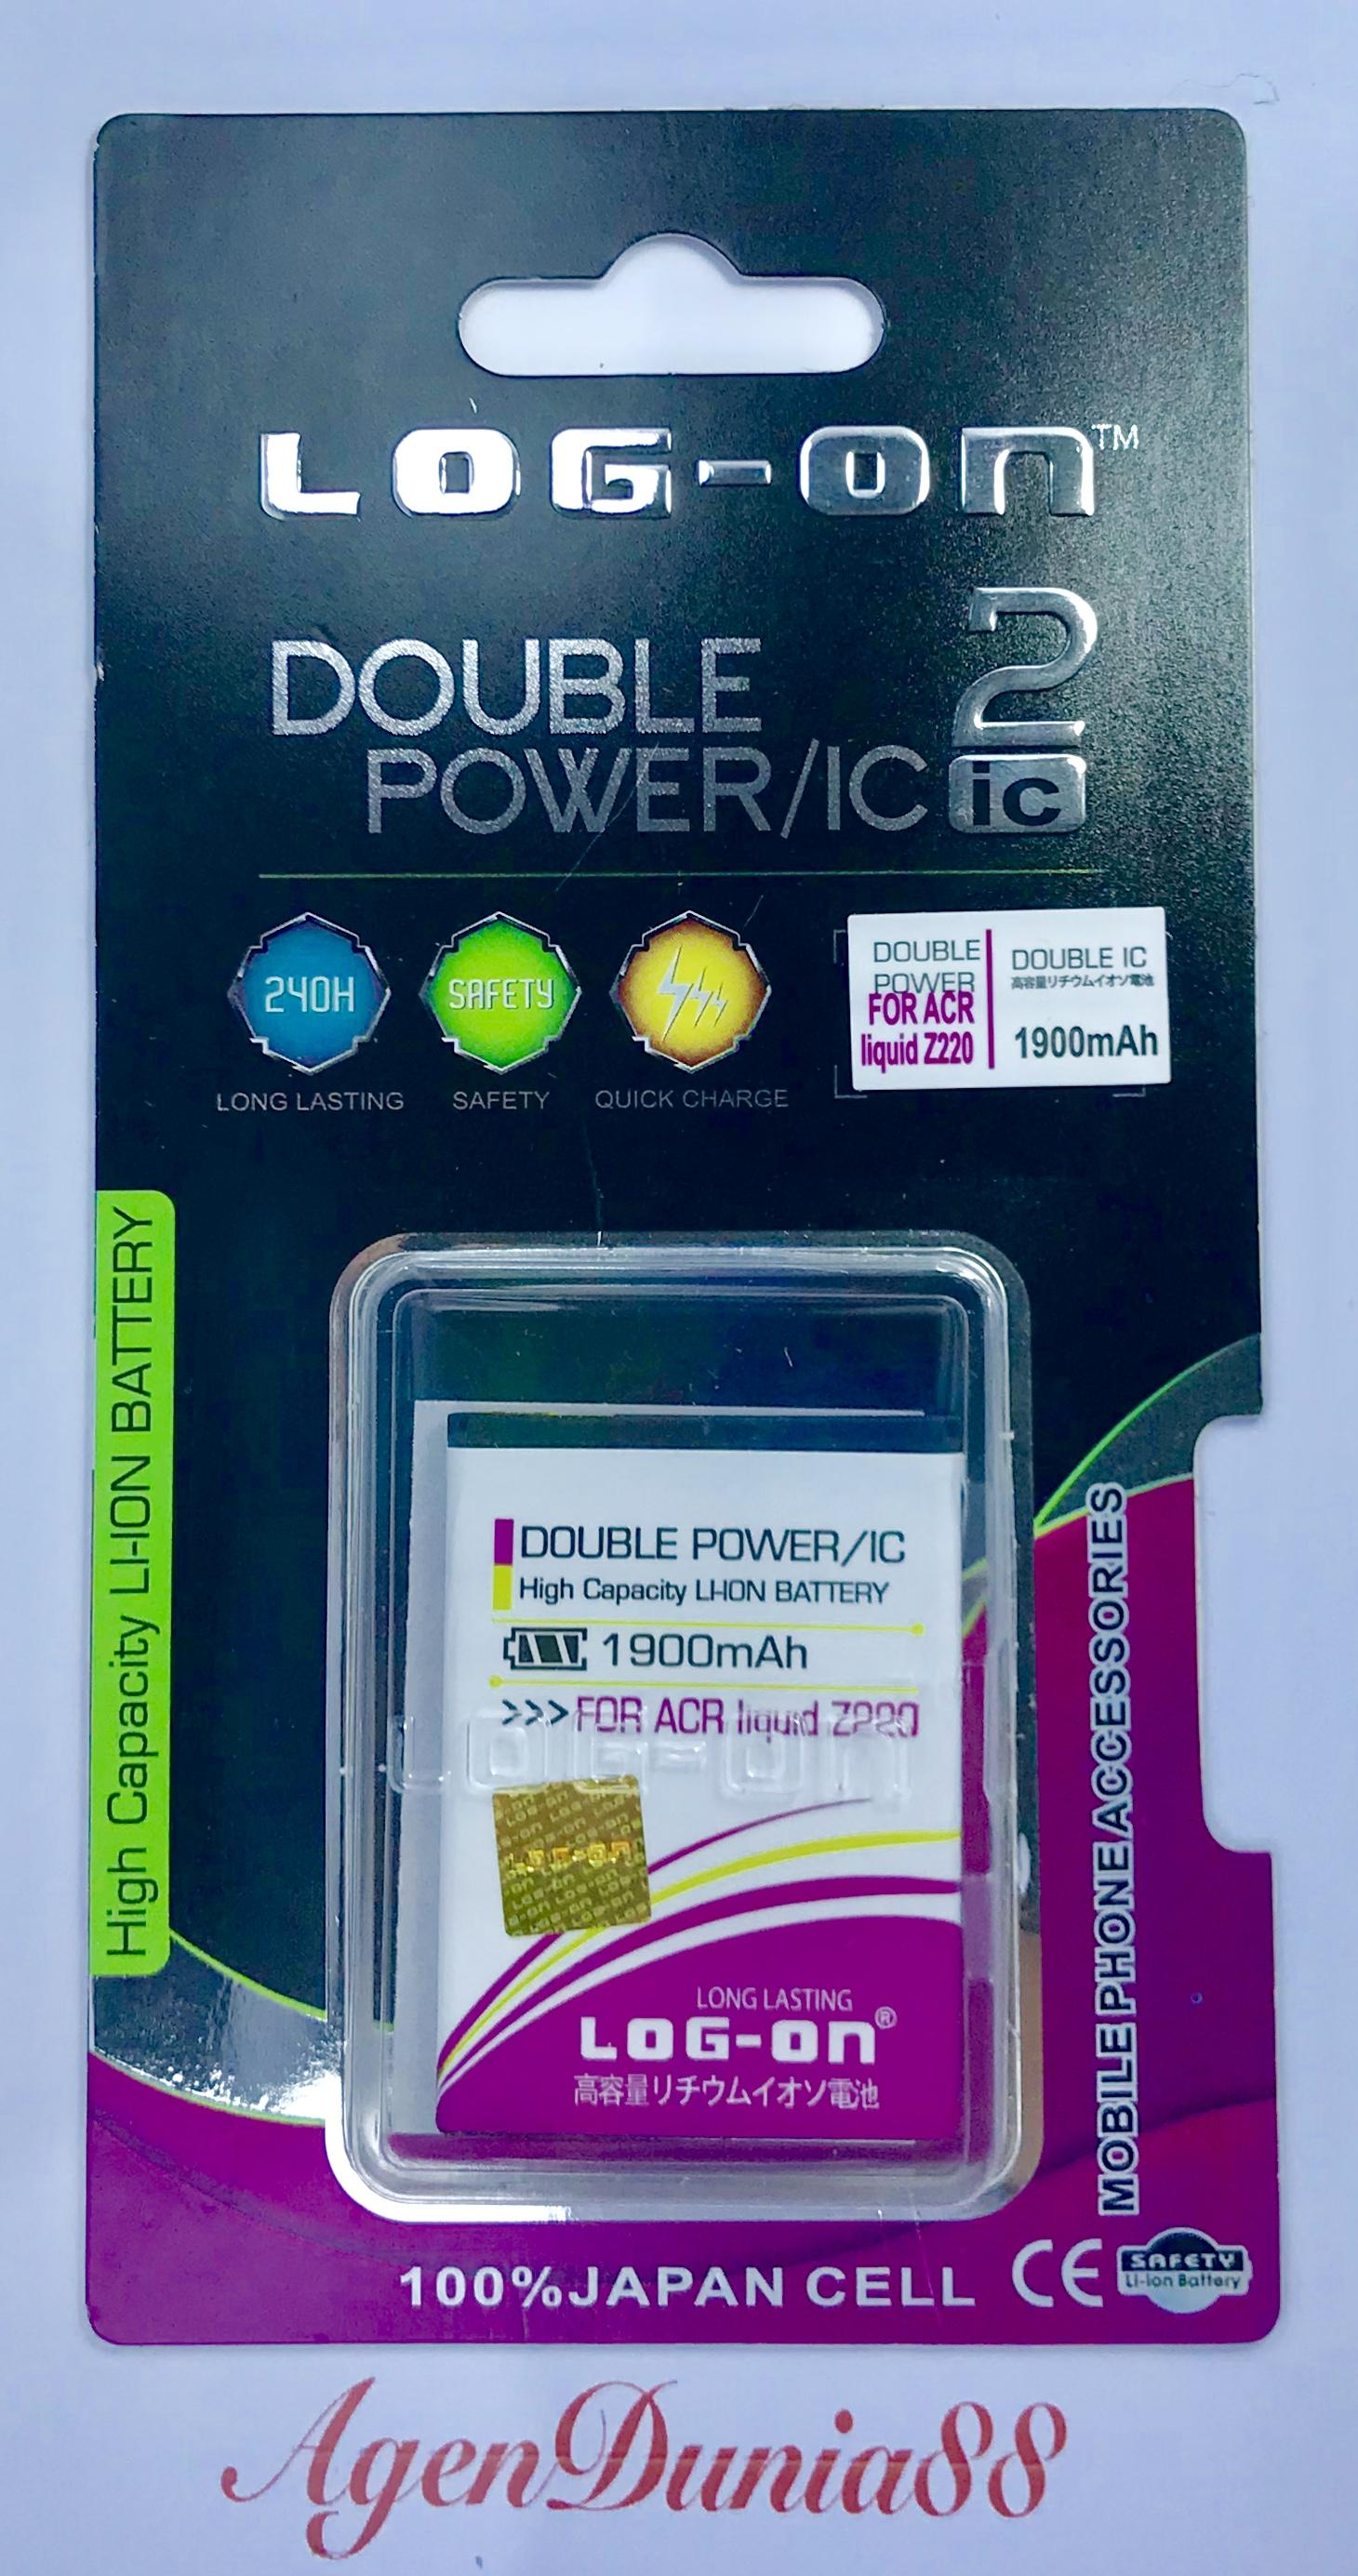 Rp 55.000. BATERAI ACER LIQUID Z200 / Z220 / Z205 / M220 / BAT-311 LOG ON DOUBLE POWER BATTERYIDR55000